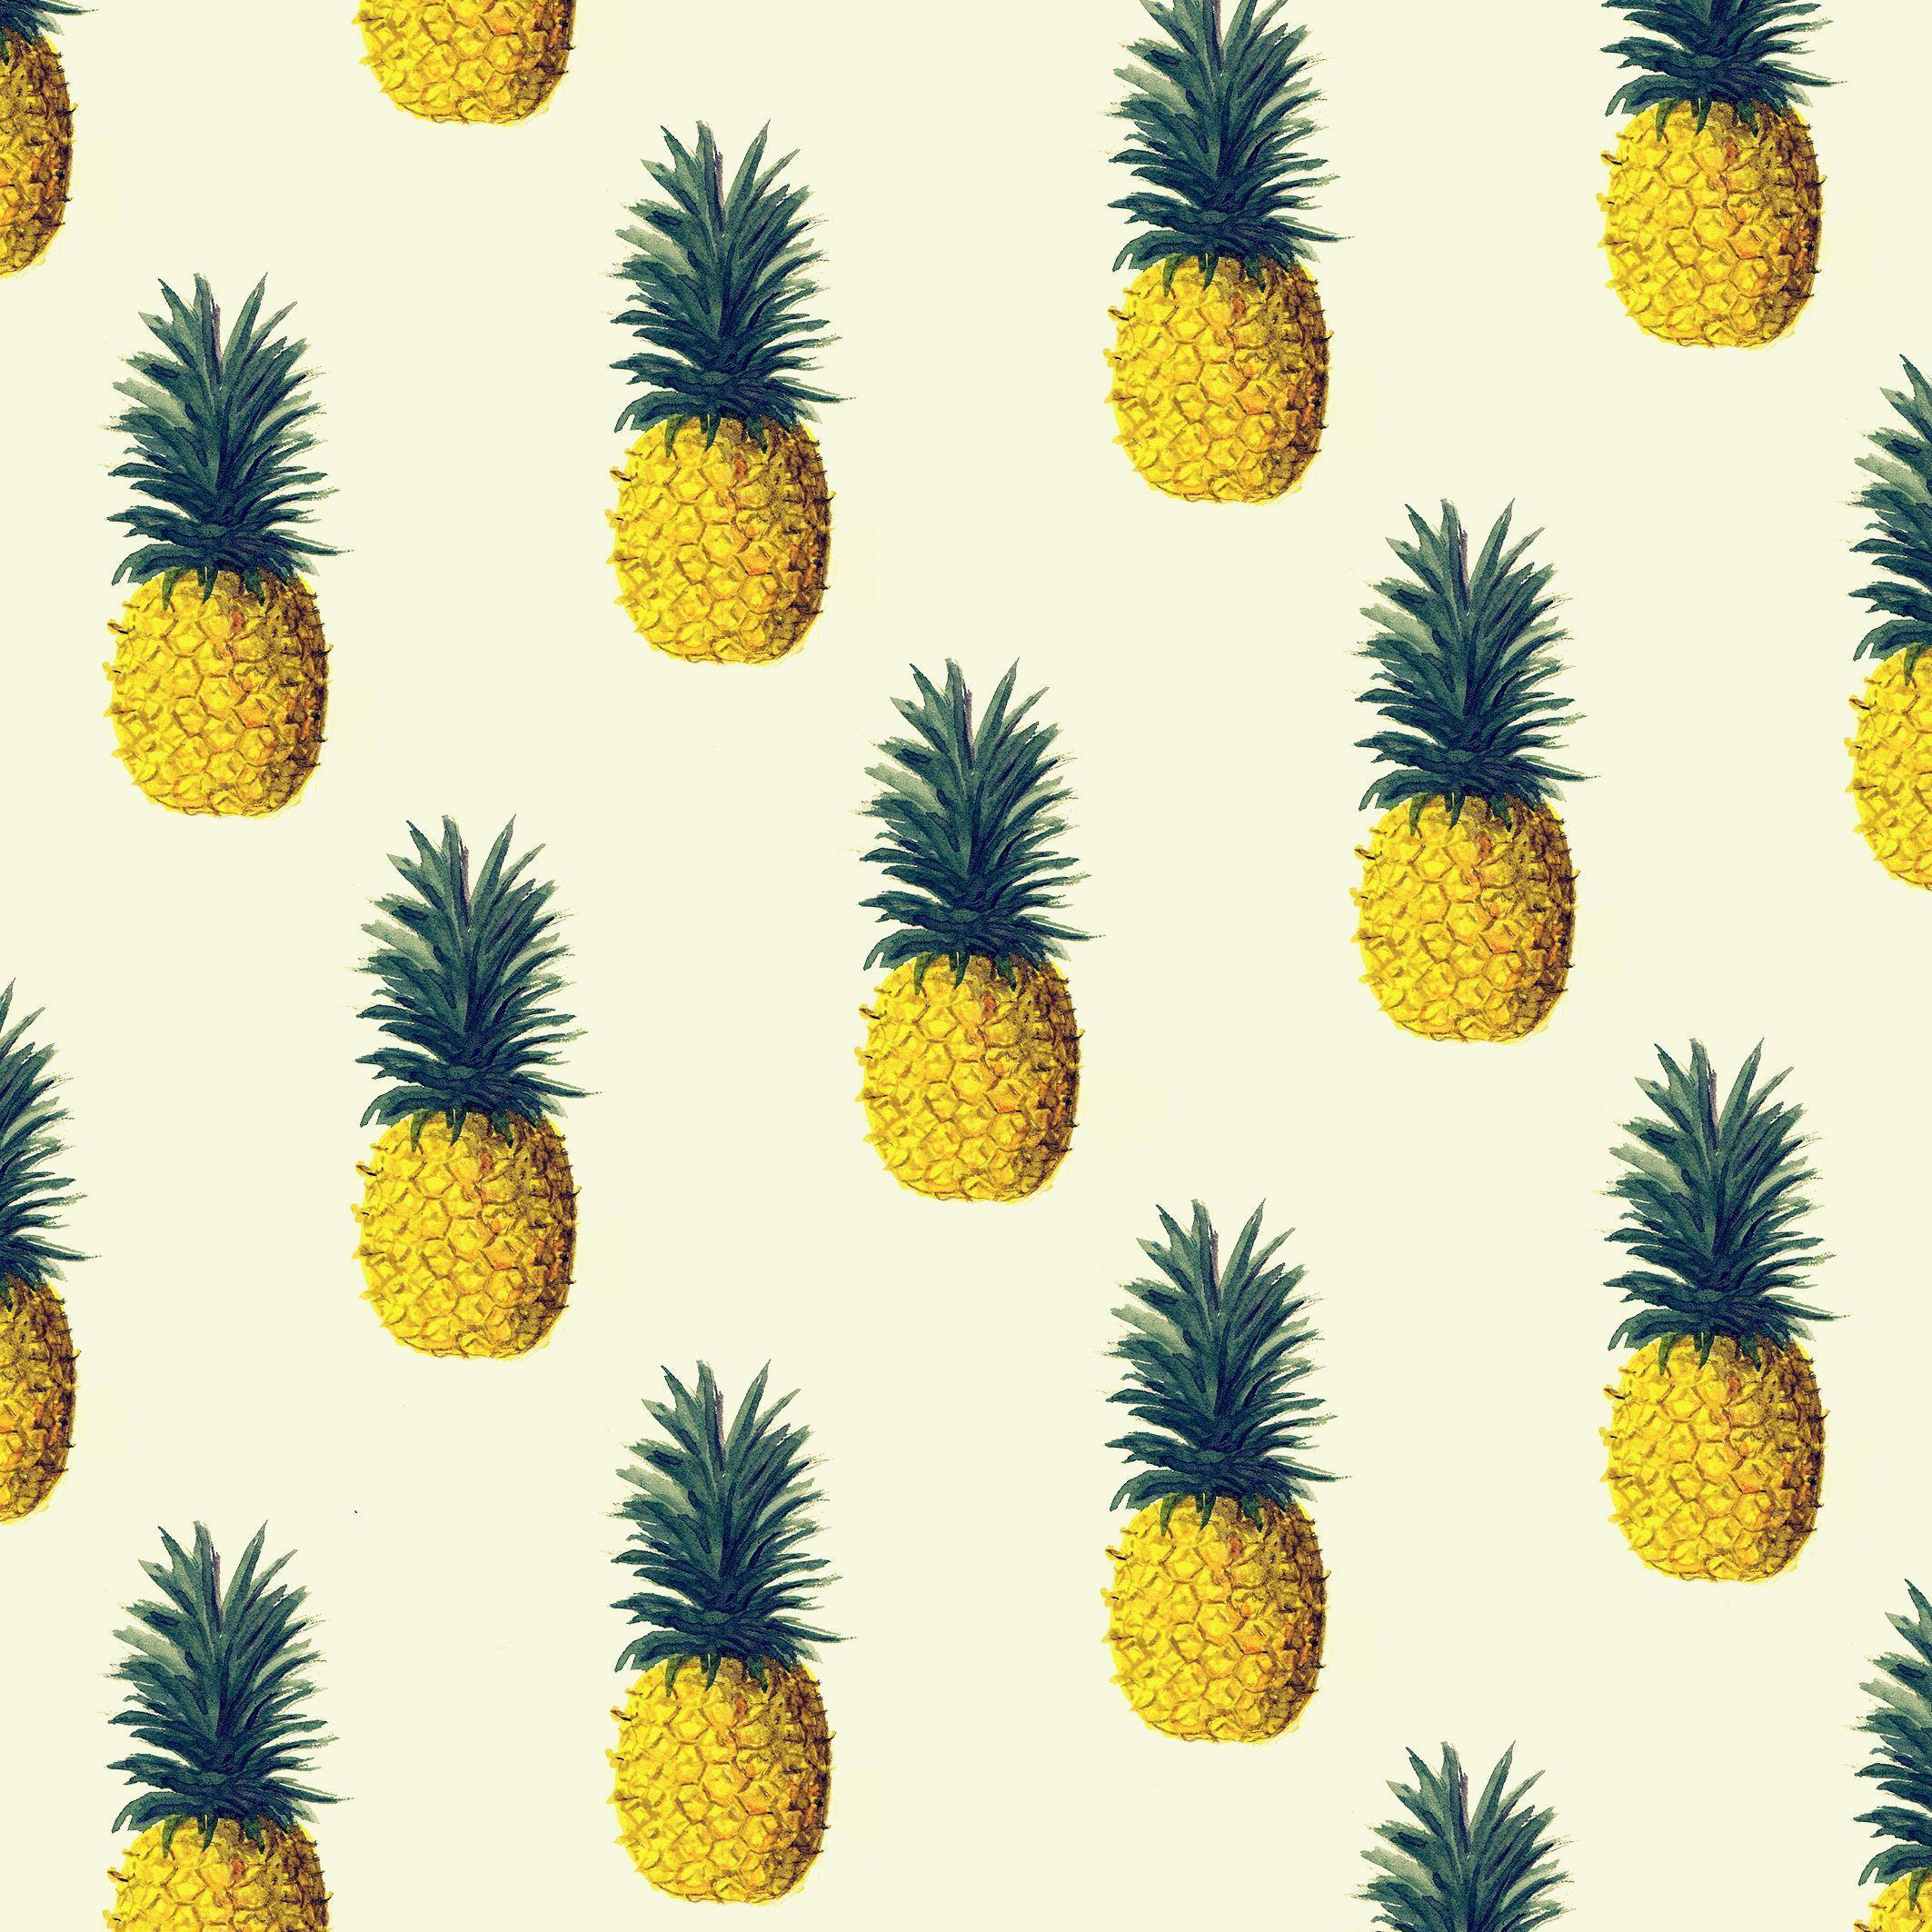 Pineapple Wallpapers - Wallpaper Cave